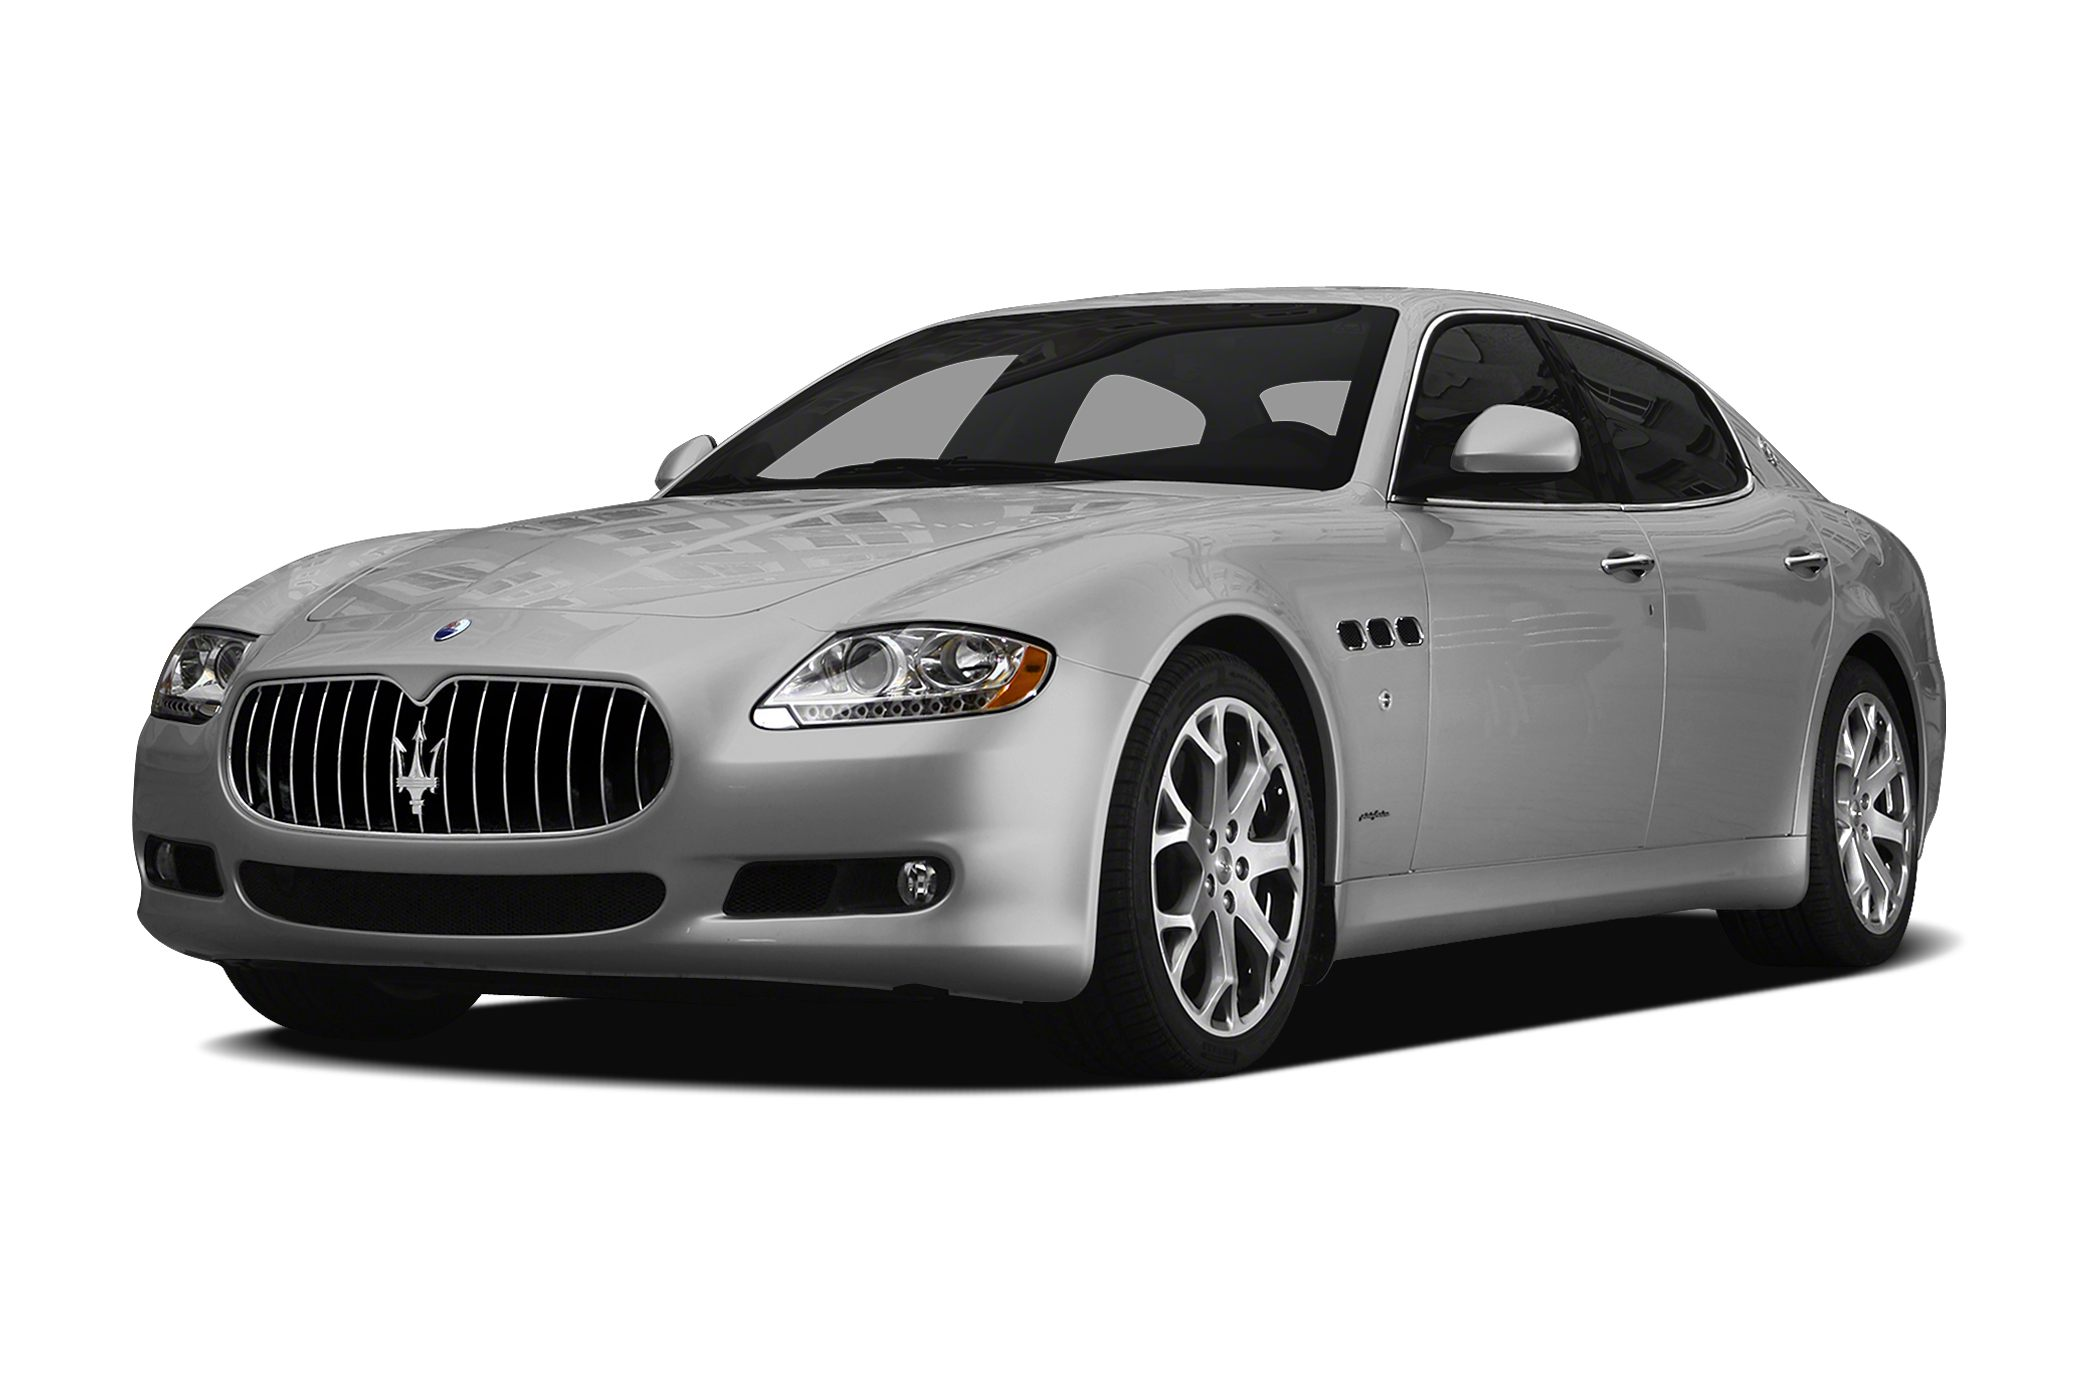 2010 Maserati Quattroporte